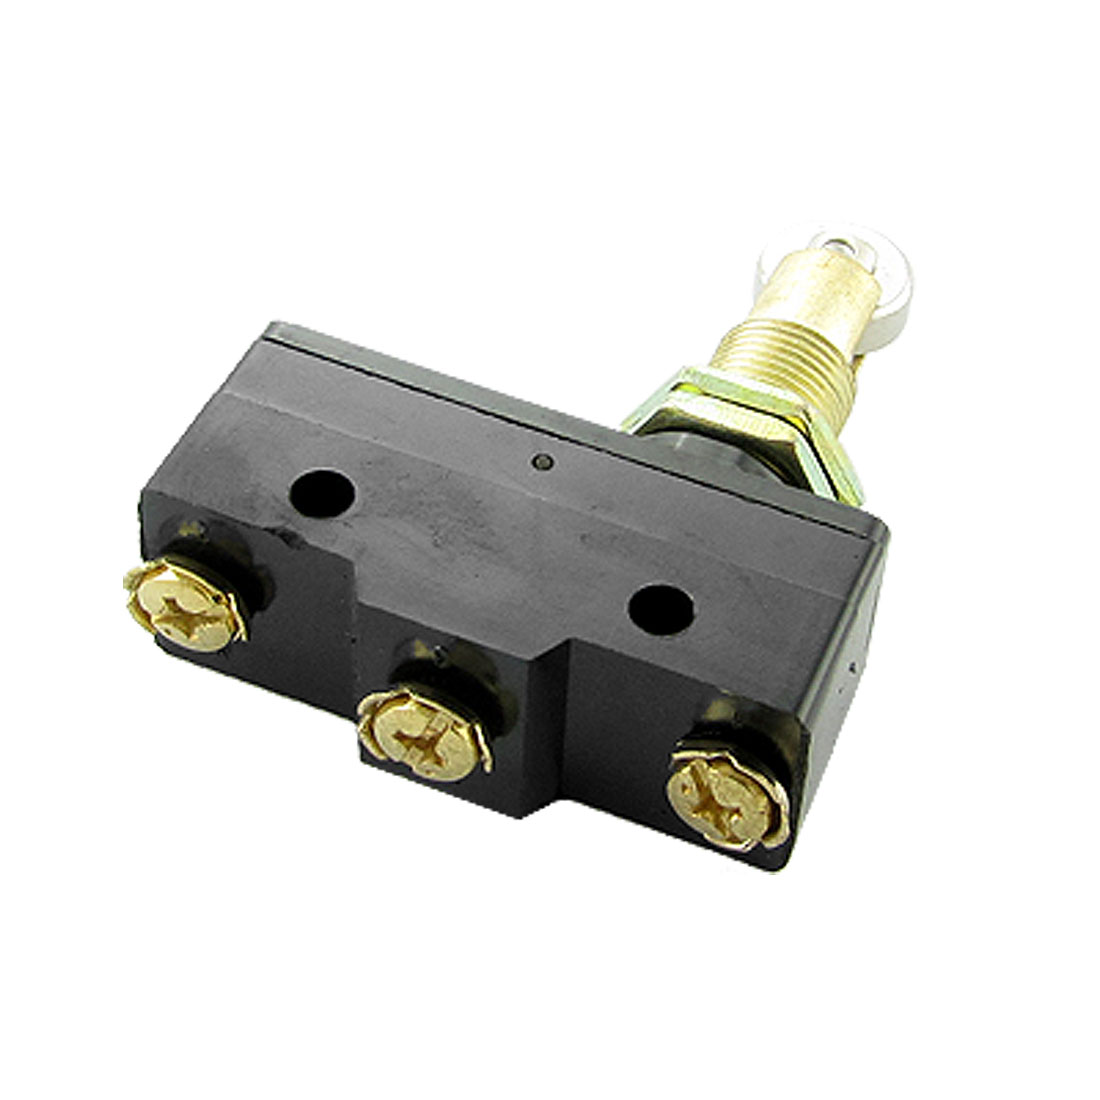 SPDT Micro Action Basic Switch Panel Mount Roller Plunger with Screw Terminal